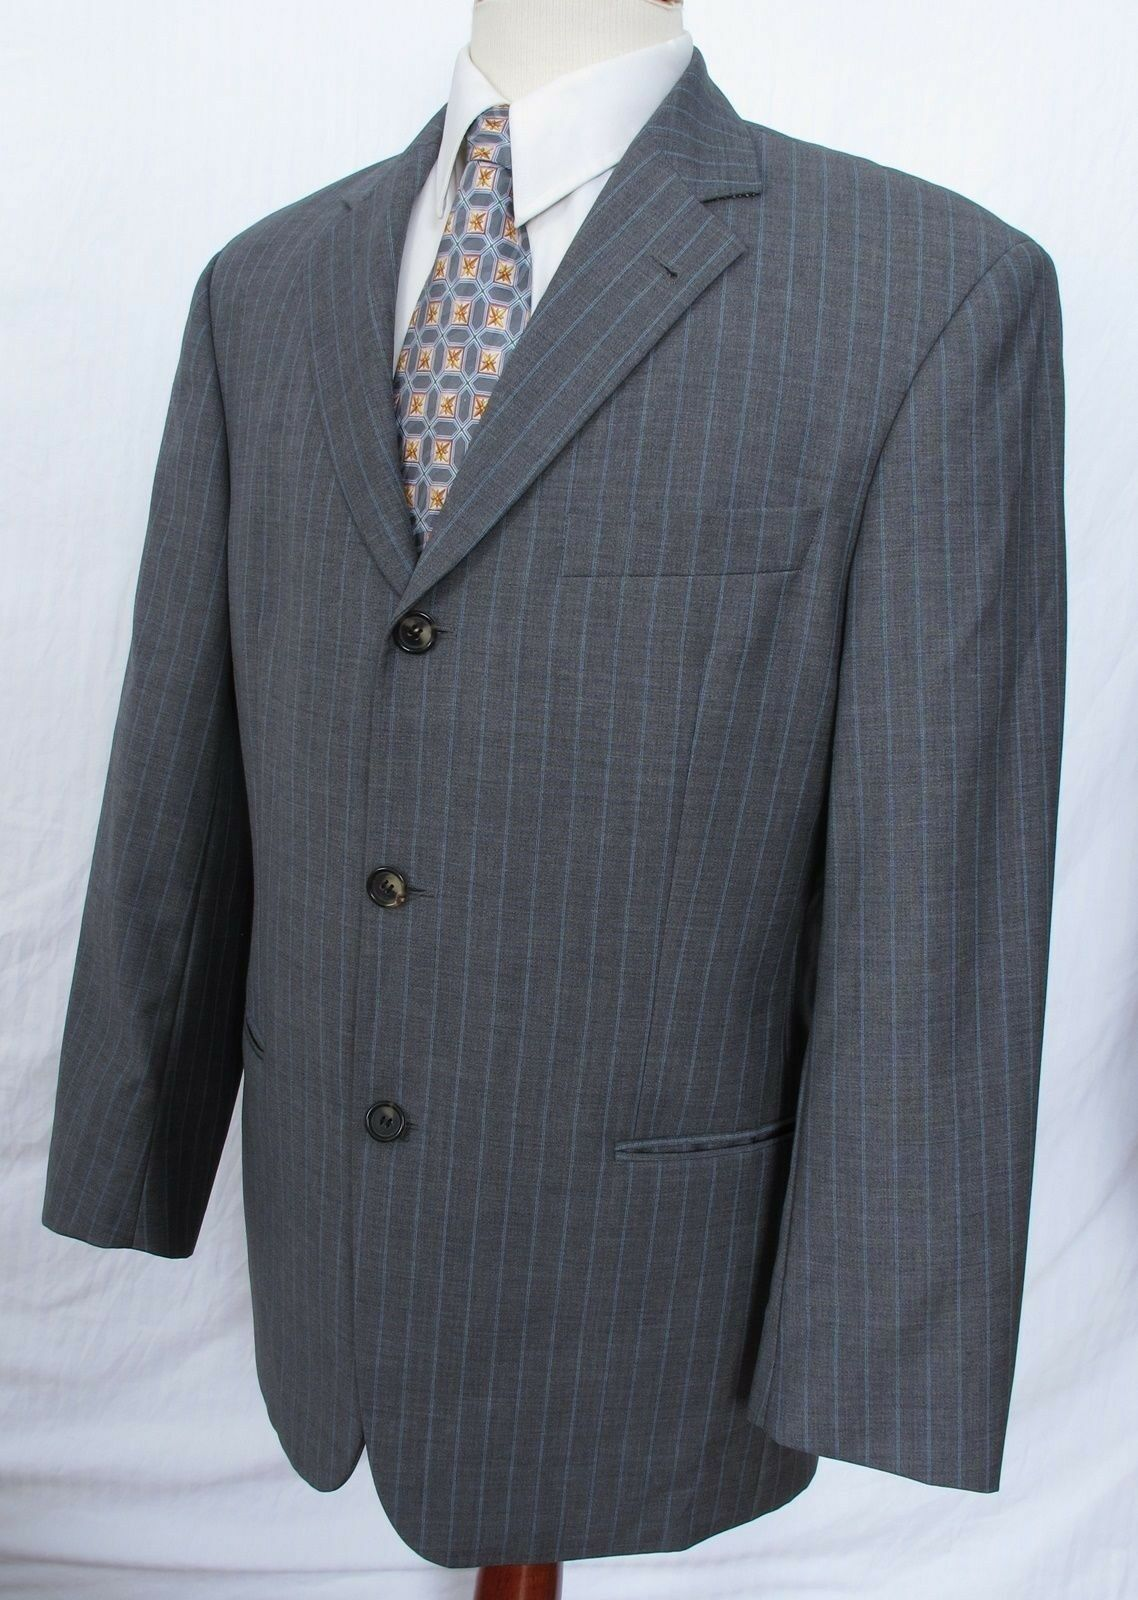 Hugo Boss Suit grau Pinstripe GALILEI 38S 32 x 27 3/4 Pants Wool Perfect LHM